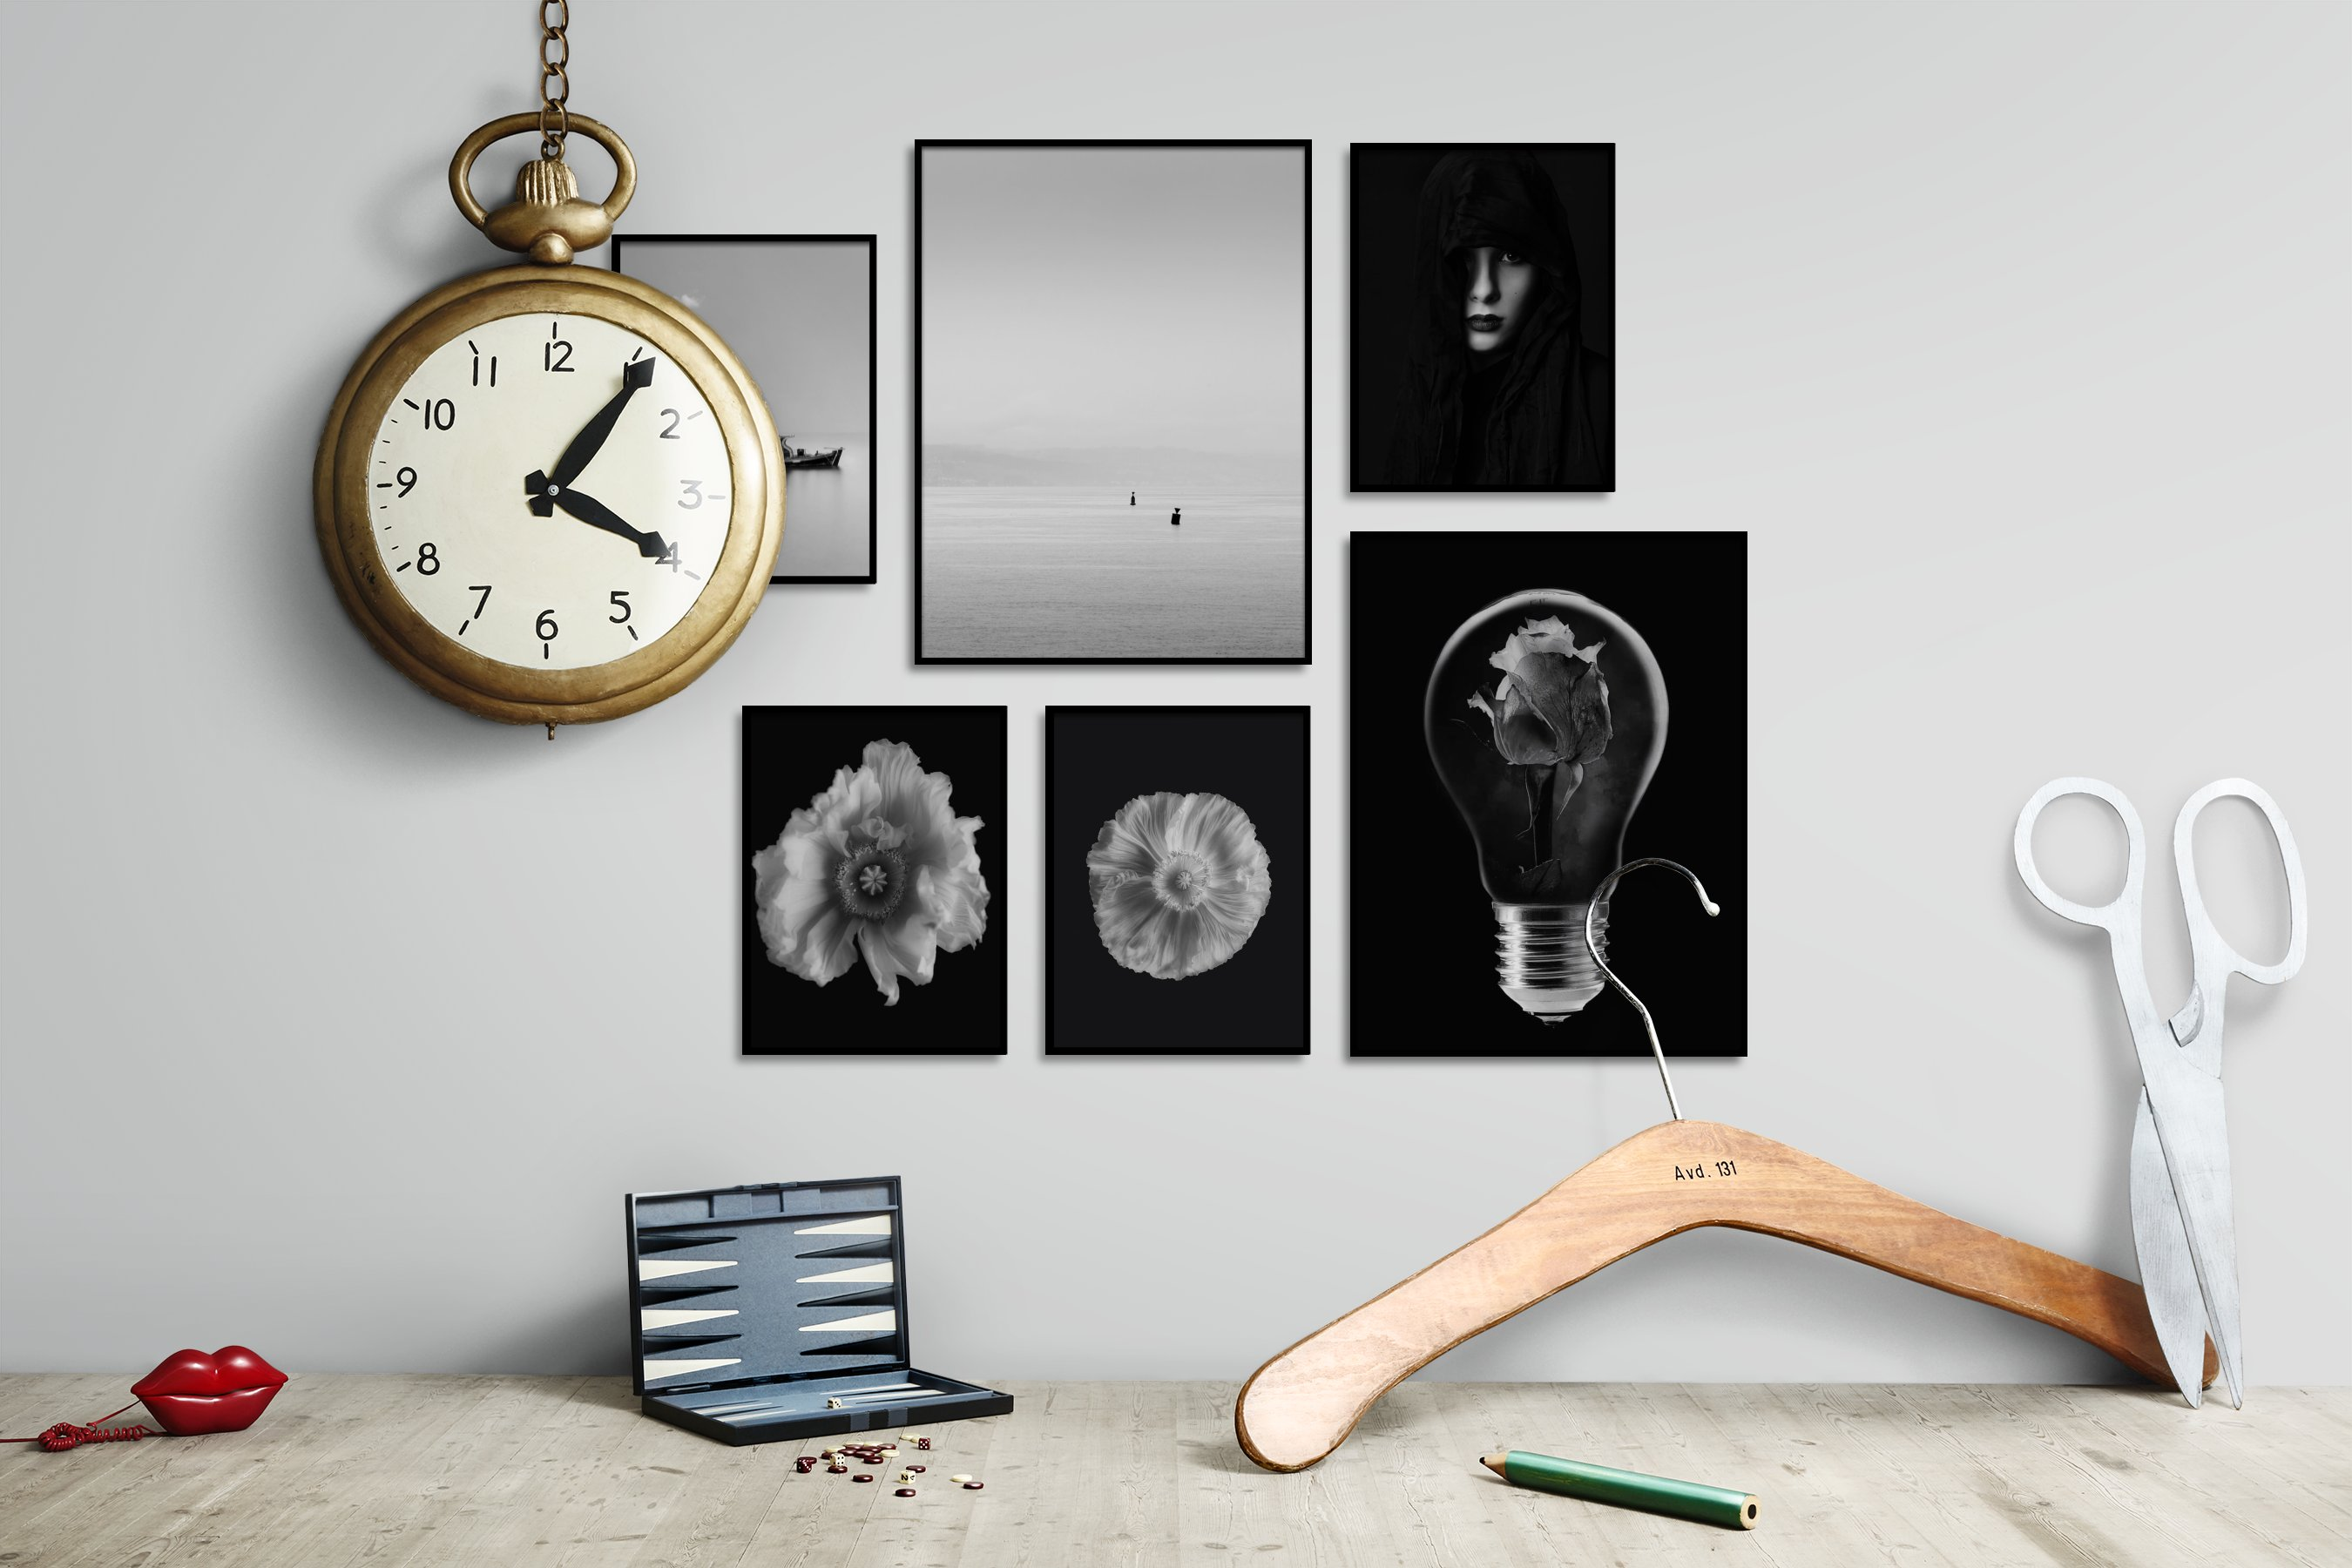 Gallery wall idea with six framed pictures arranged on a wall depicting Black & White, For the Minimalist, Beach & Water, Mindfulness, Dark Tones, and Flowers & Plants